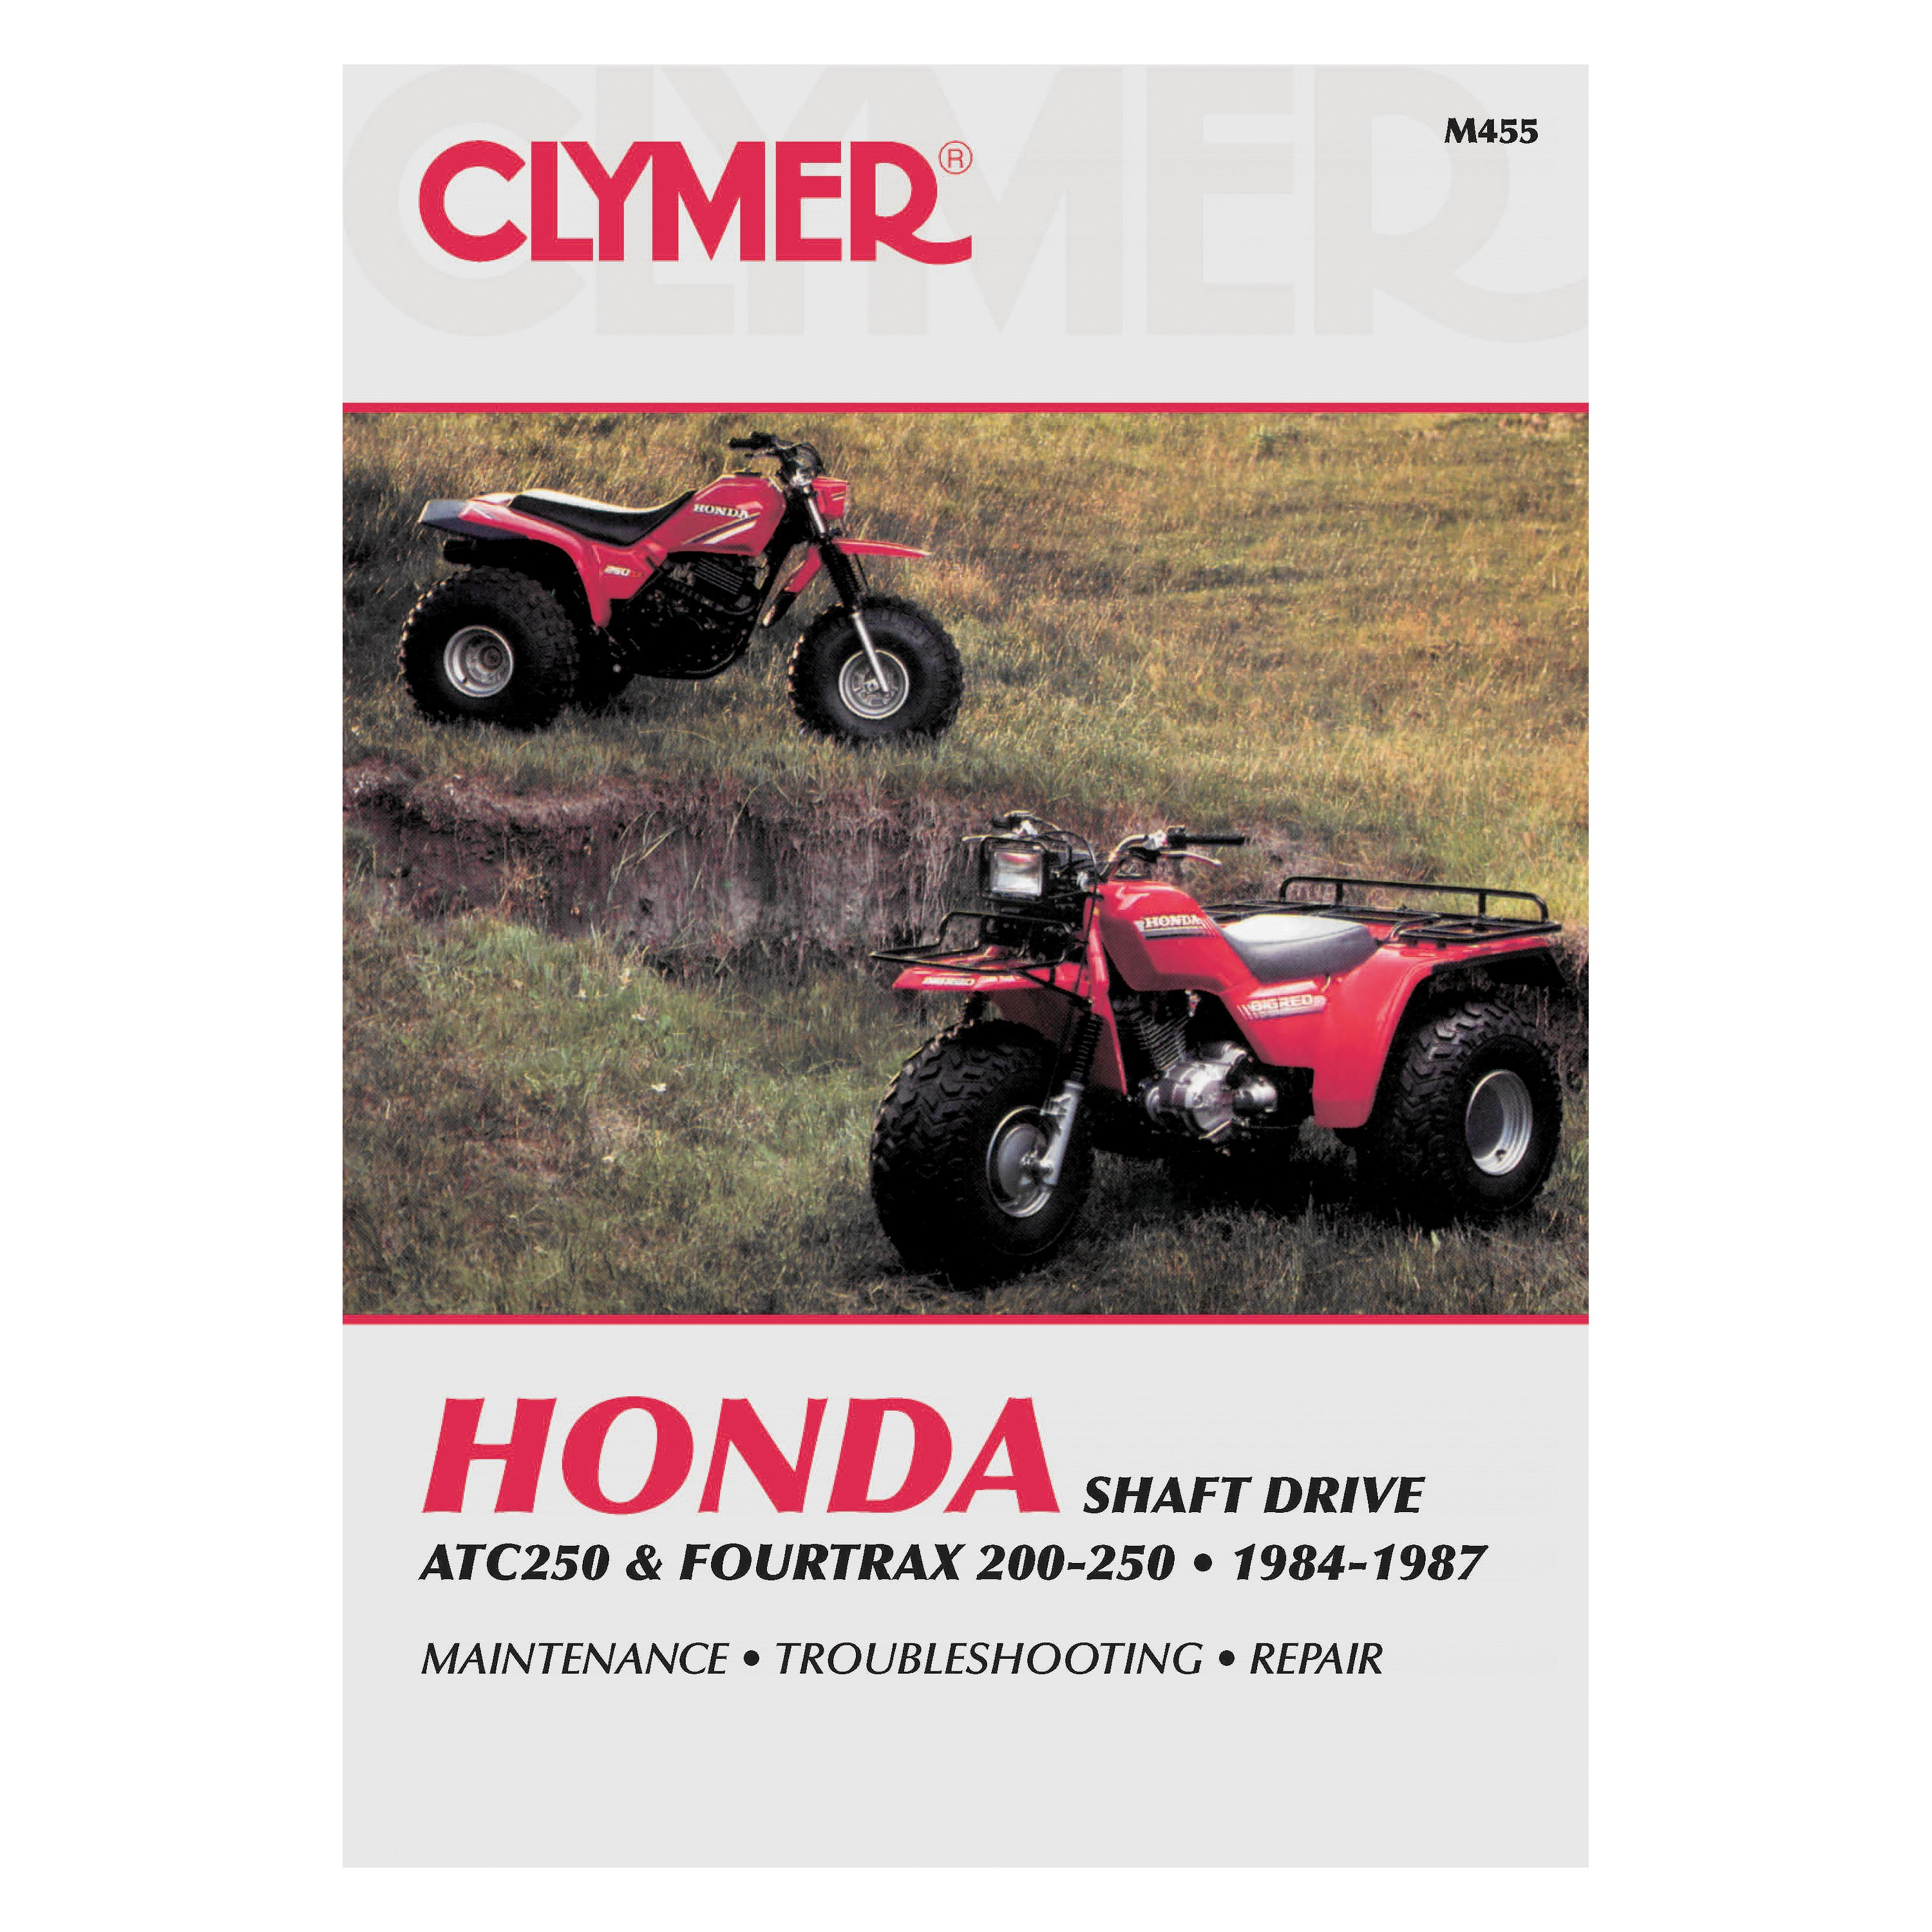 Clymer® - Honda ATC250 and Fourtrax 200-250, 1984-1987 Manual